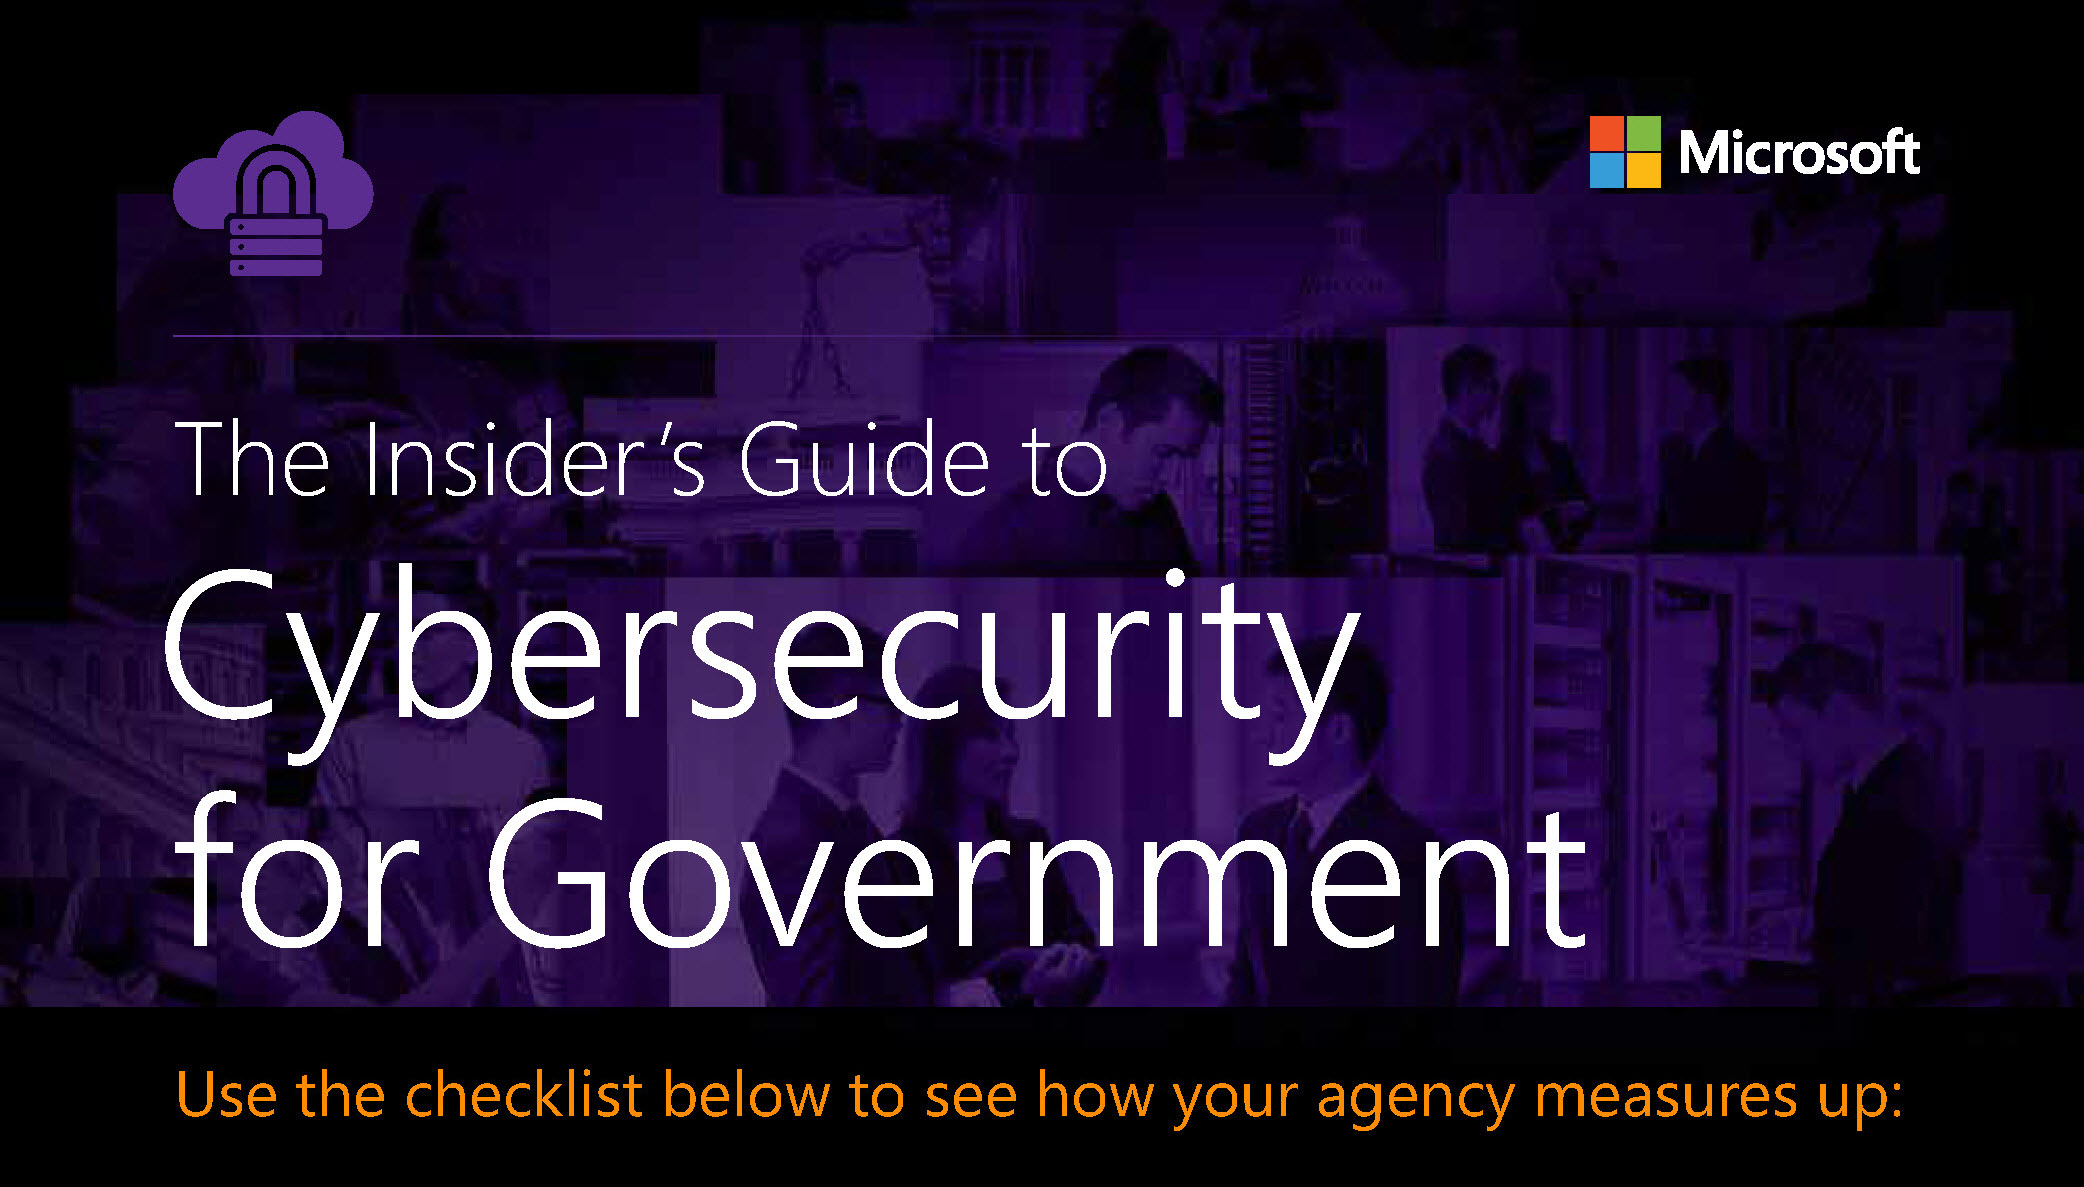 What Cyber Security Policy